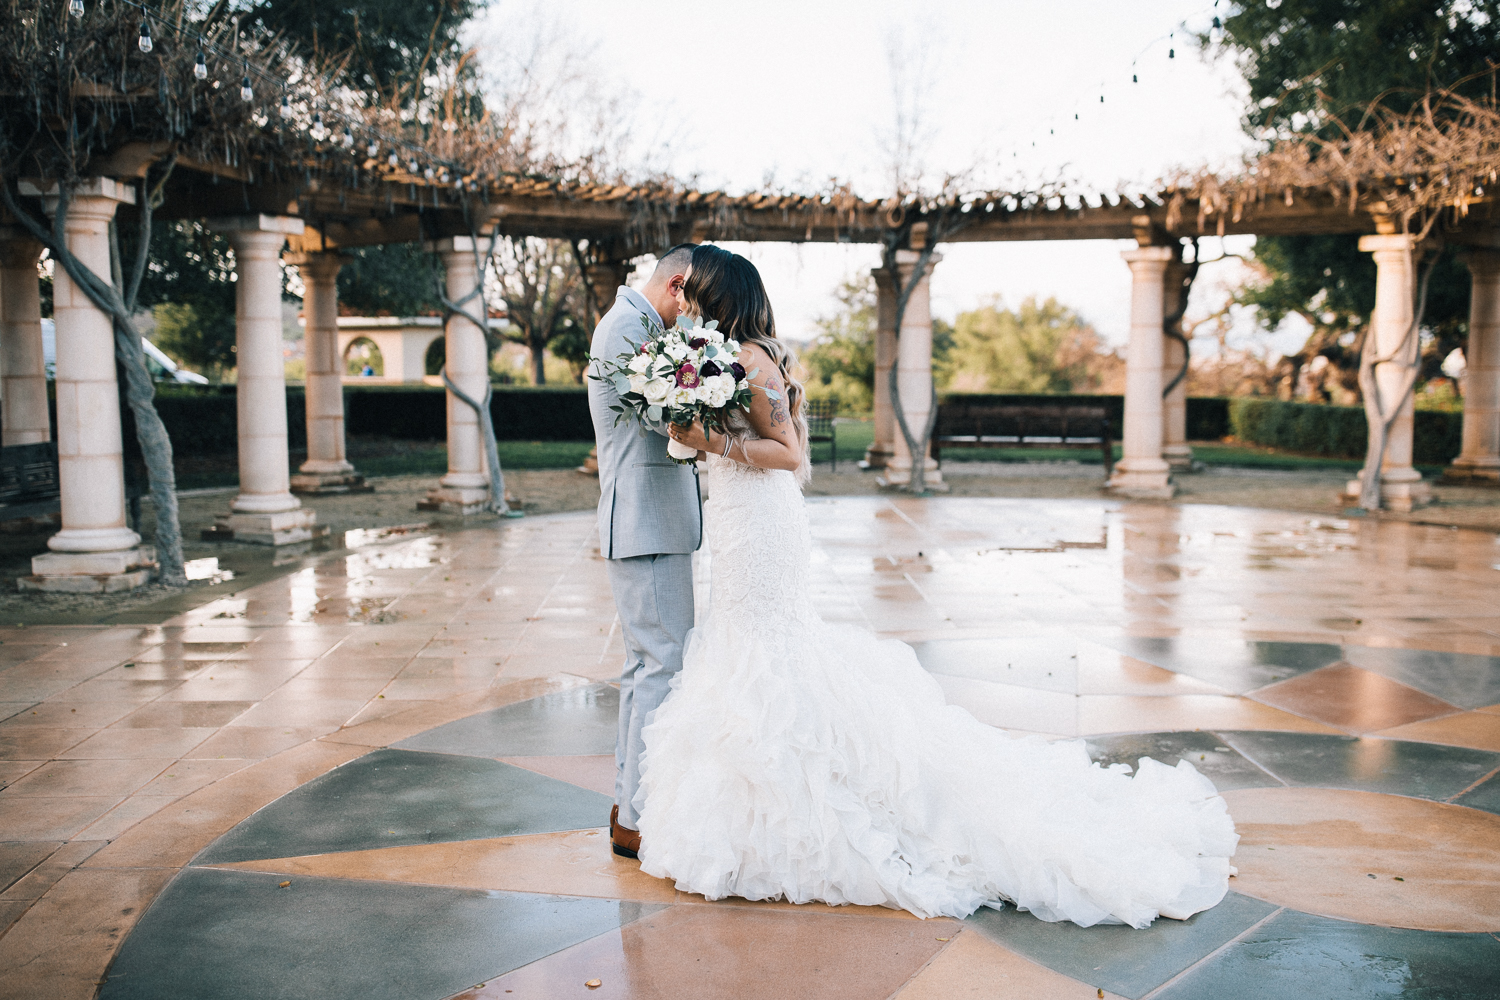 2019_01_ 202019.01.20 Santiago Wedding Blog Photos Edited For Web 0043.jpg